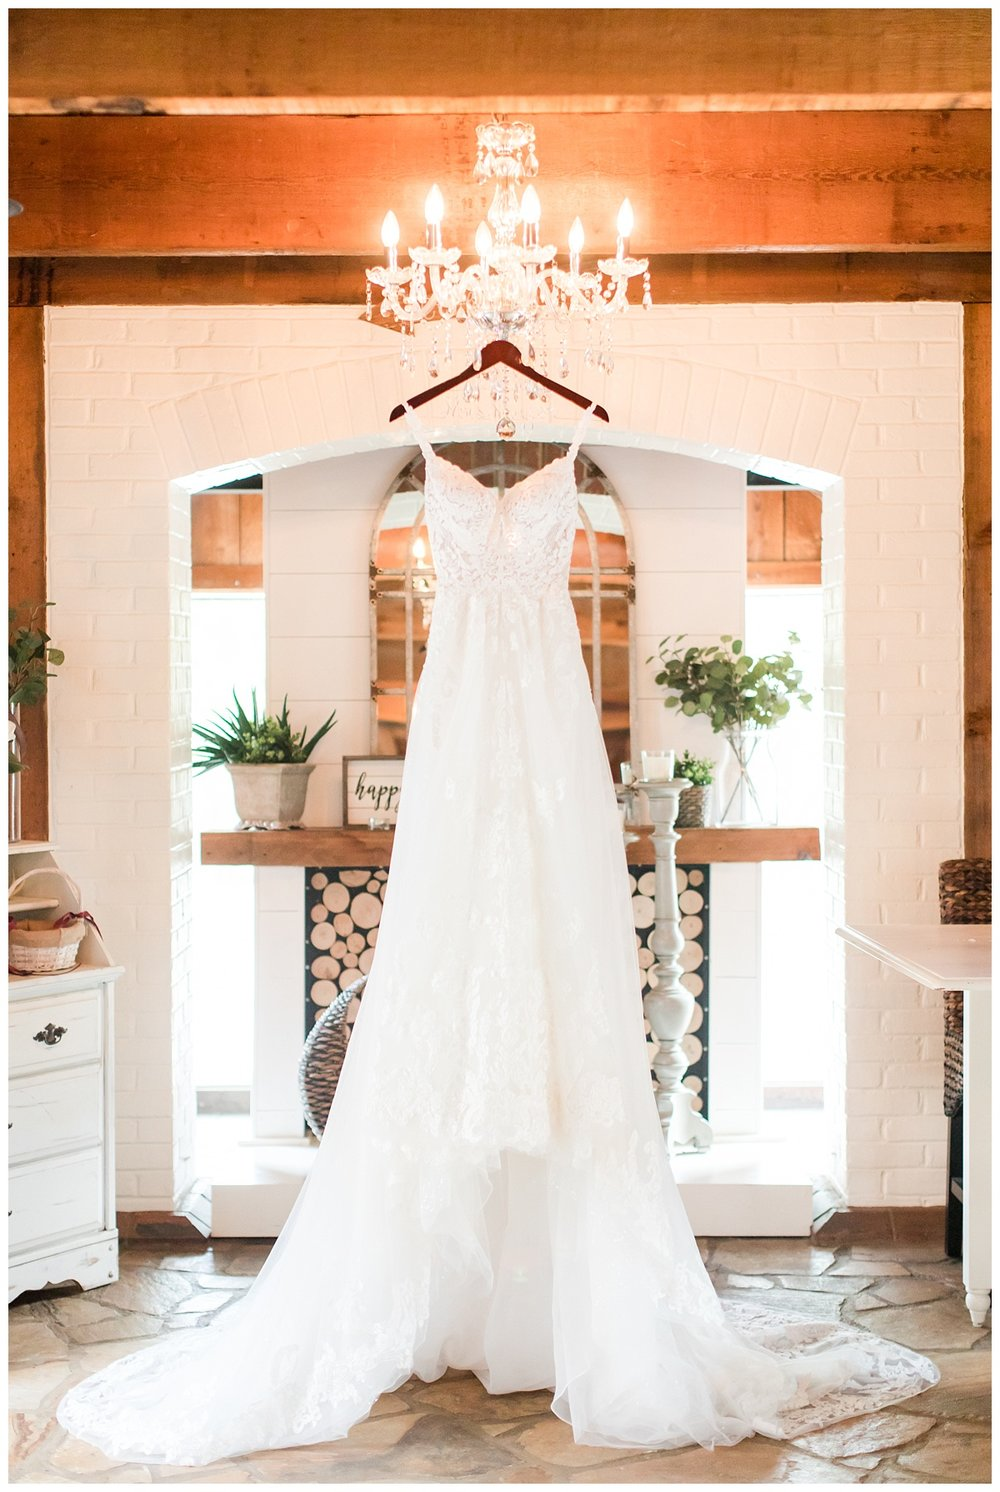 Meyer Wedding_Cottin Gin at Mill Creek_Abby Breaux_Blog-14.jpg